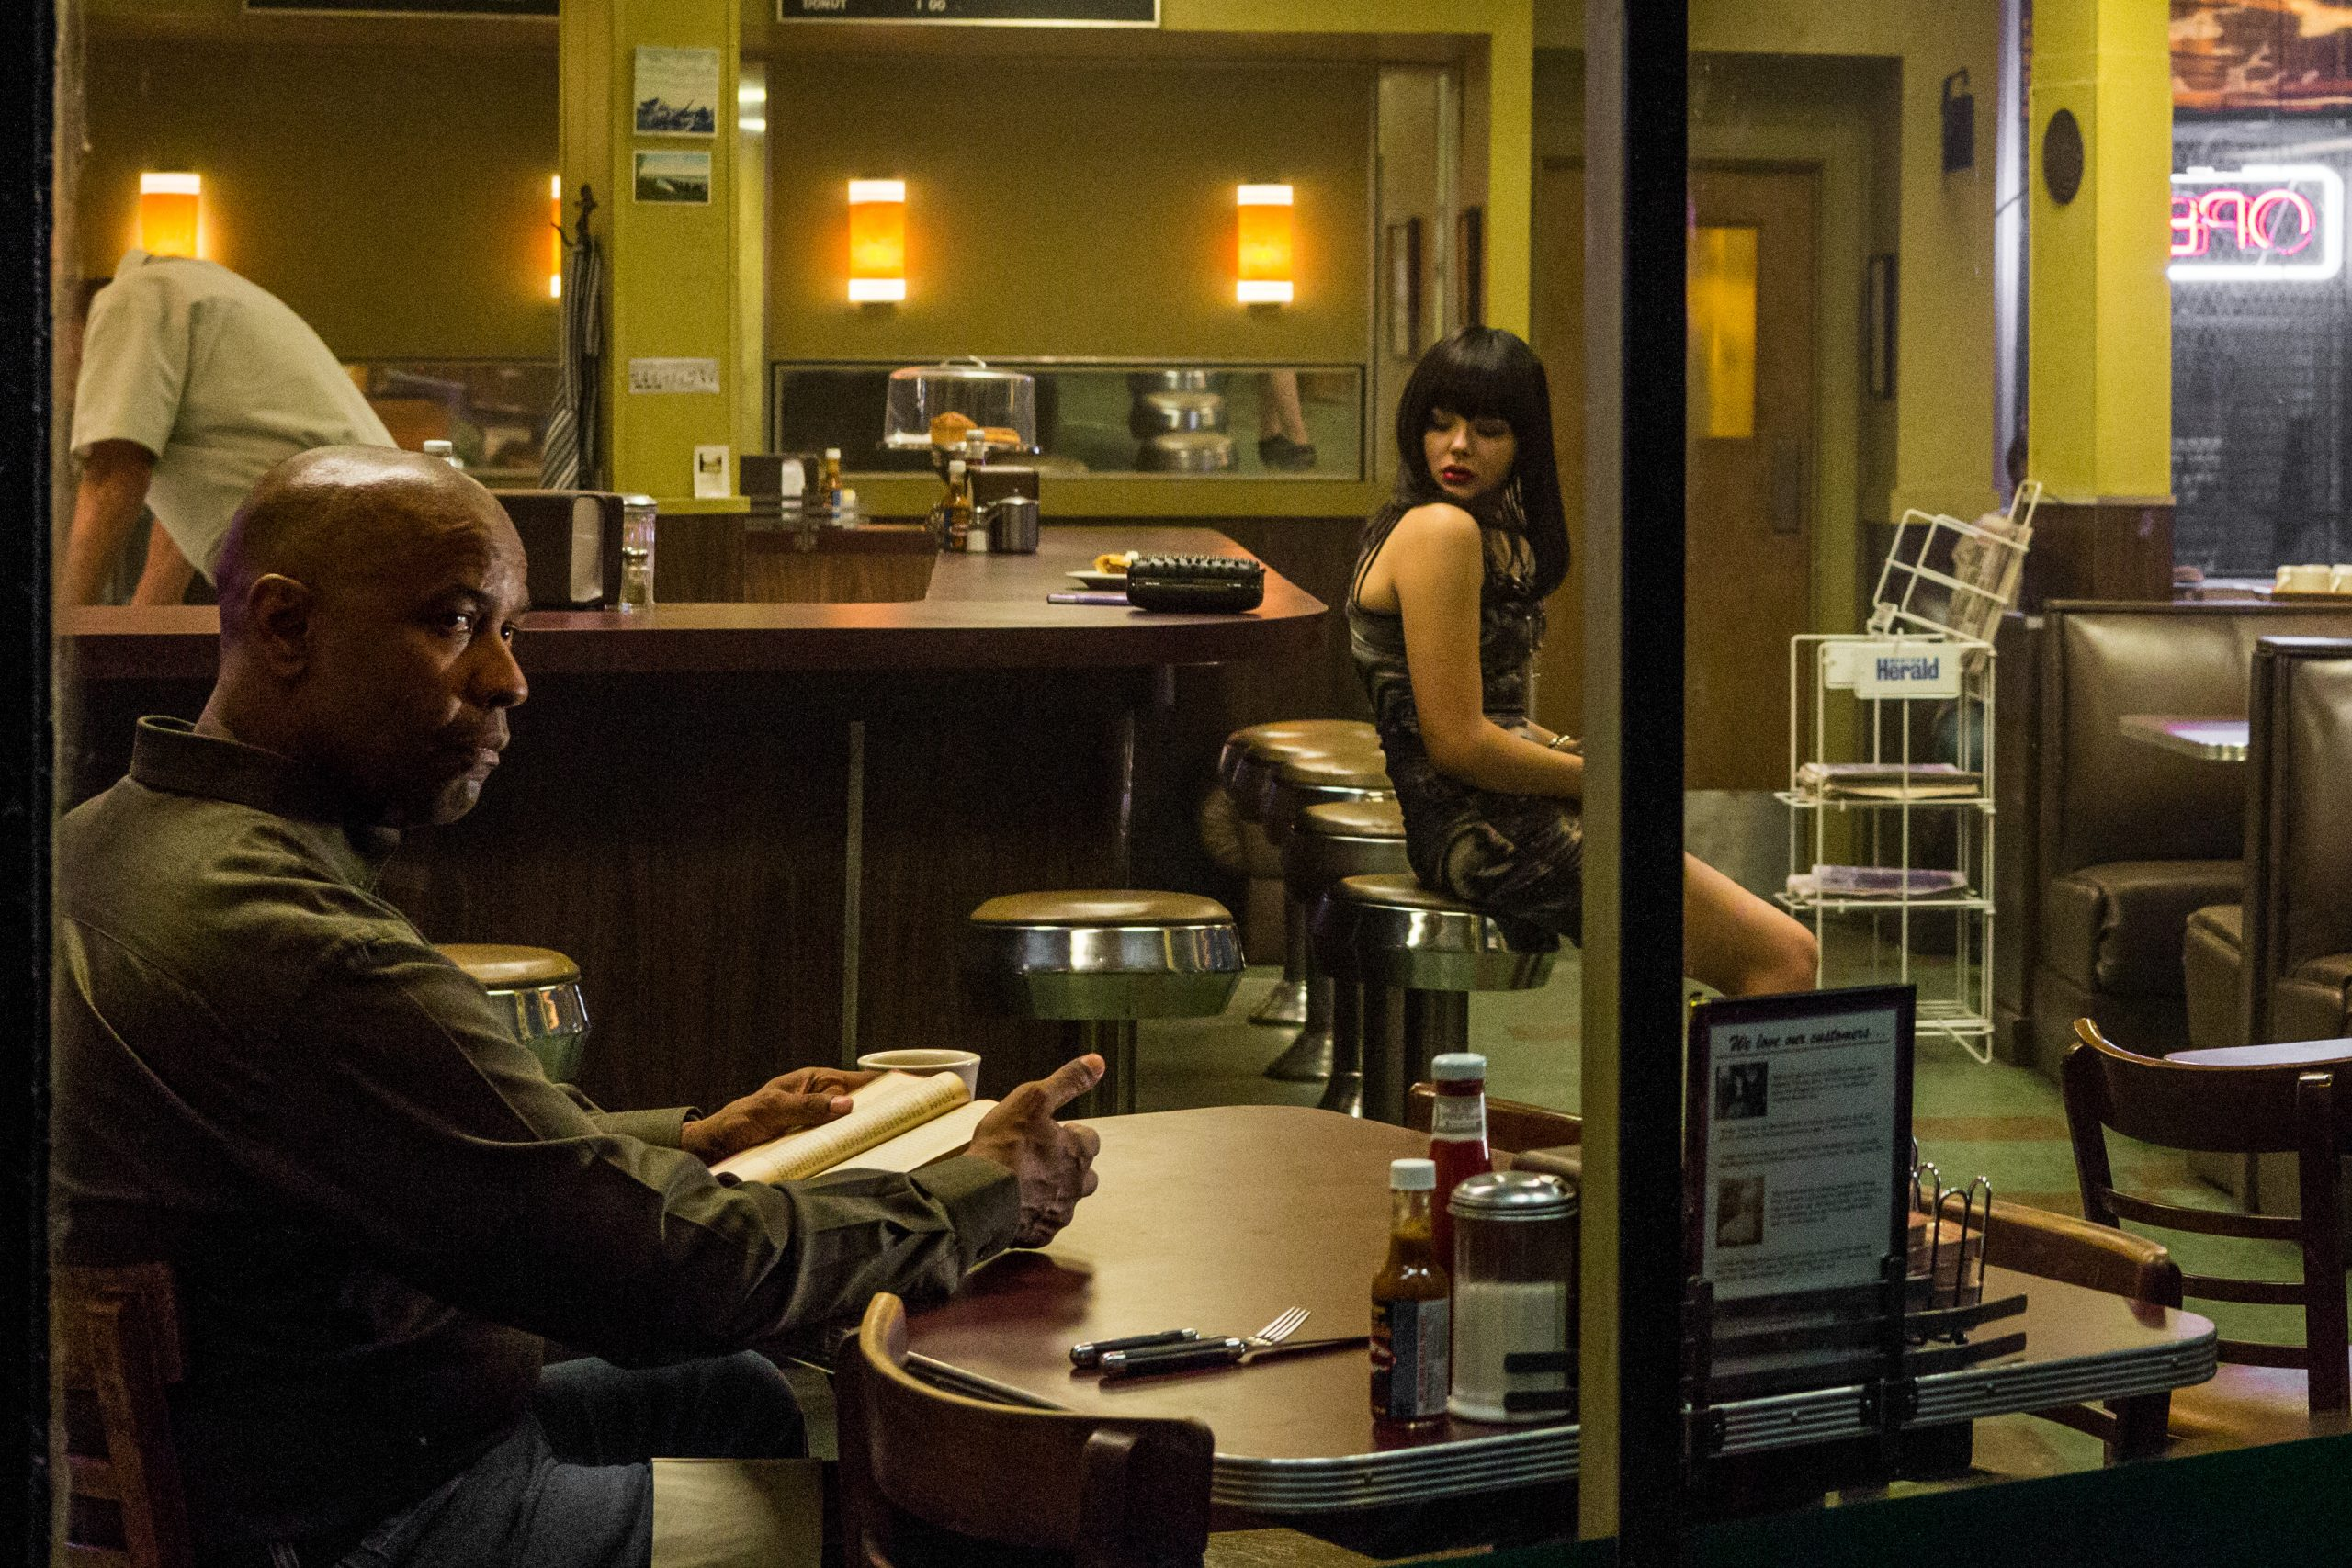 Denzel Washington sits at a diner table with a book while Chloe Grace Moretz sits on a stool at the counter